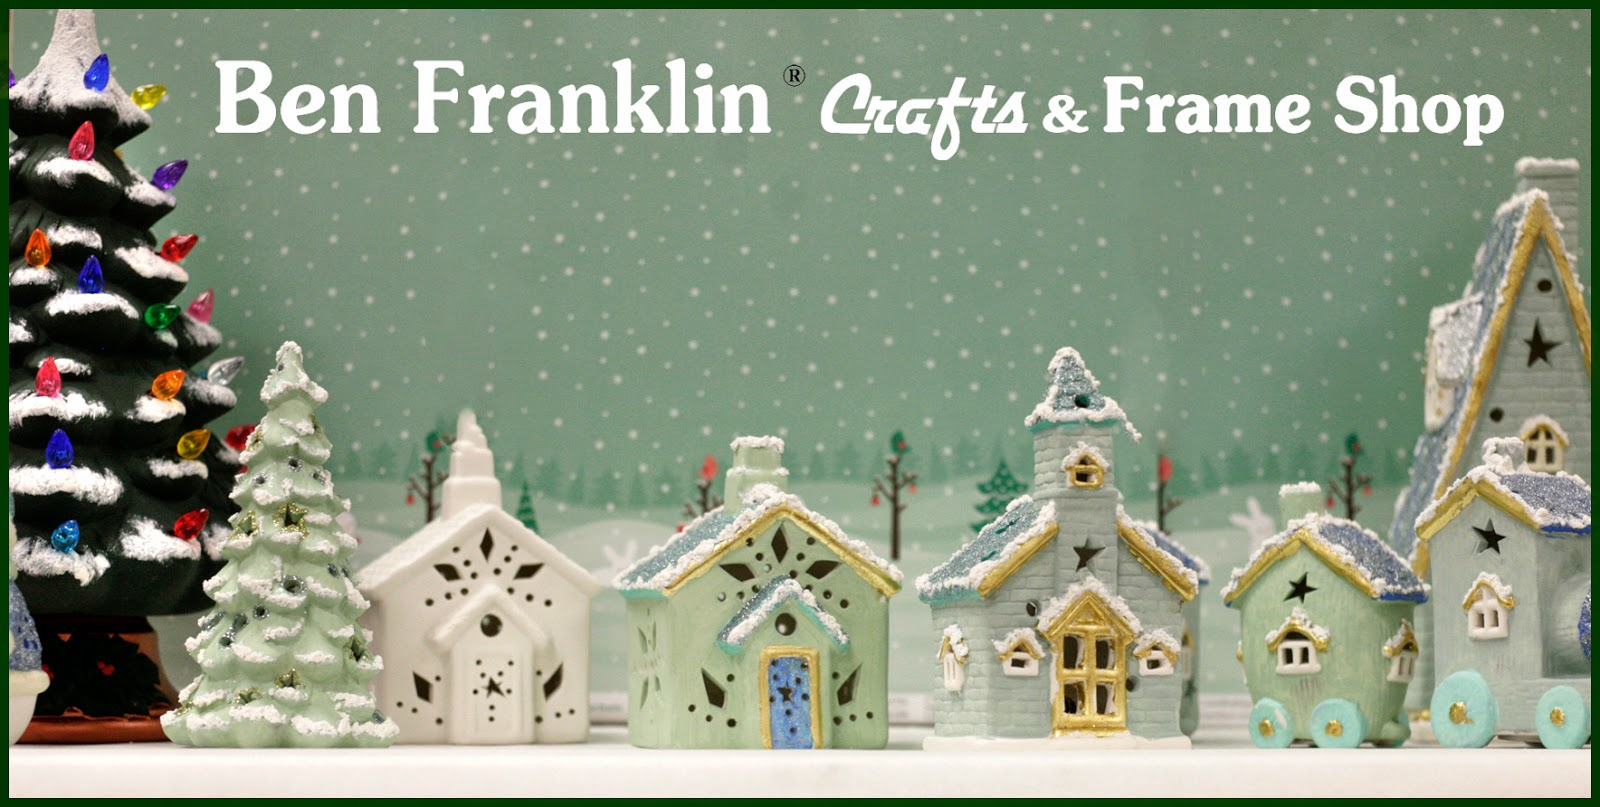 paint your own christmas village nostalgia items continue to be a popular trend do you remember the paintable ceramics craft stores used to carry - Paint Your Own Ceramic Christmas Decorations